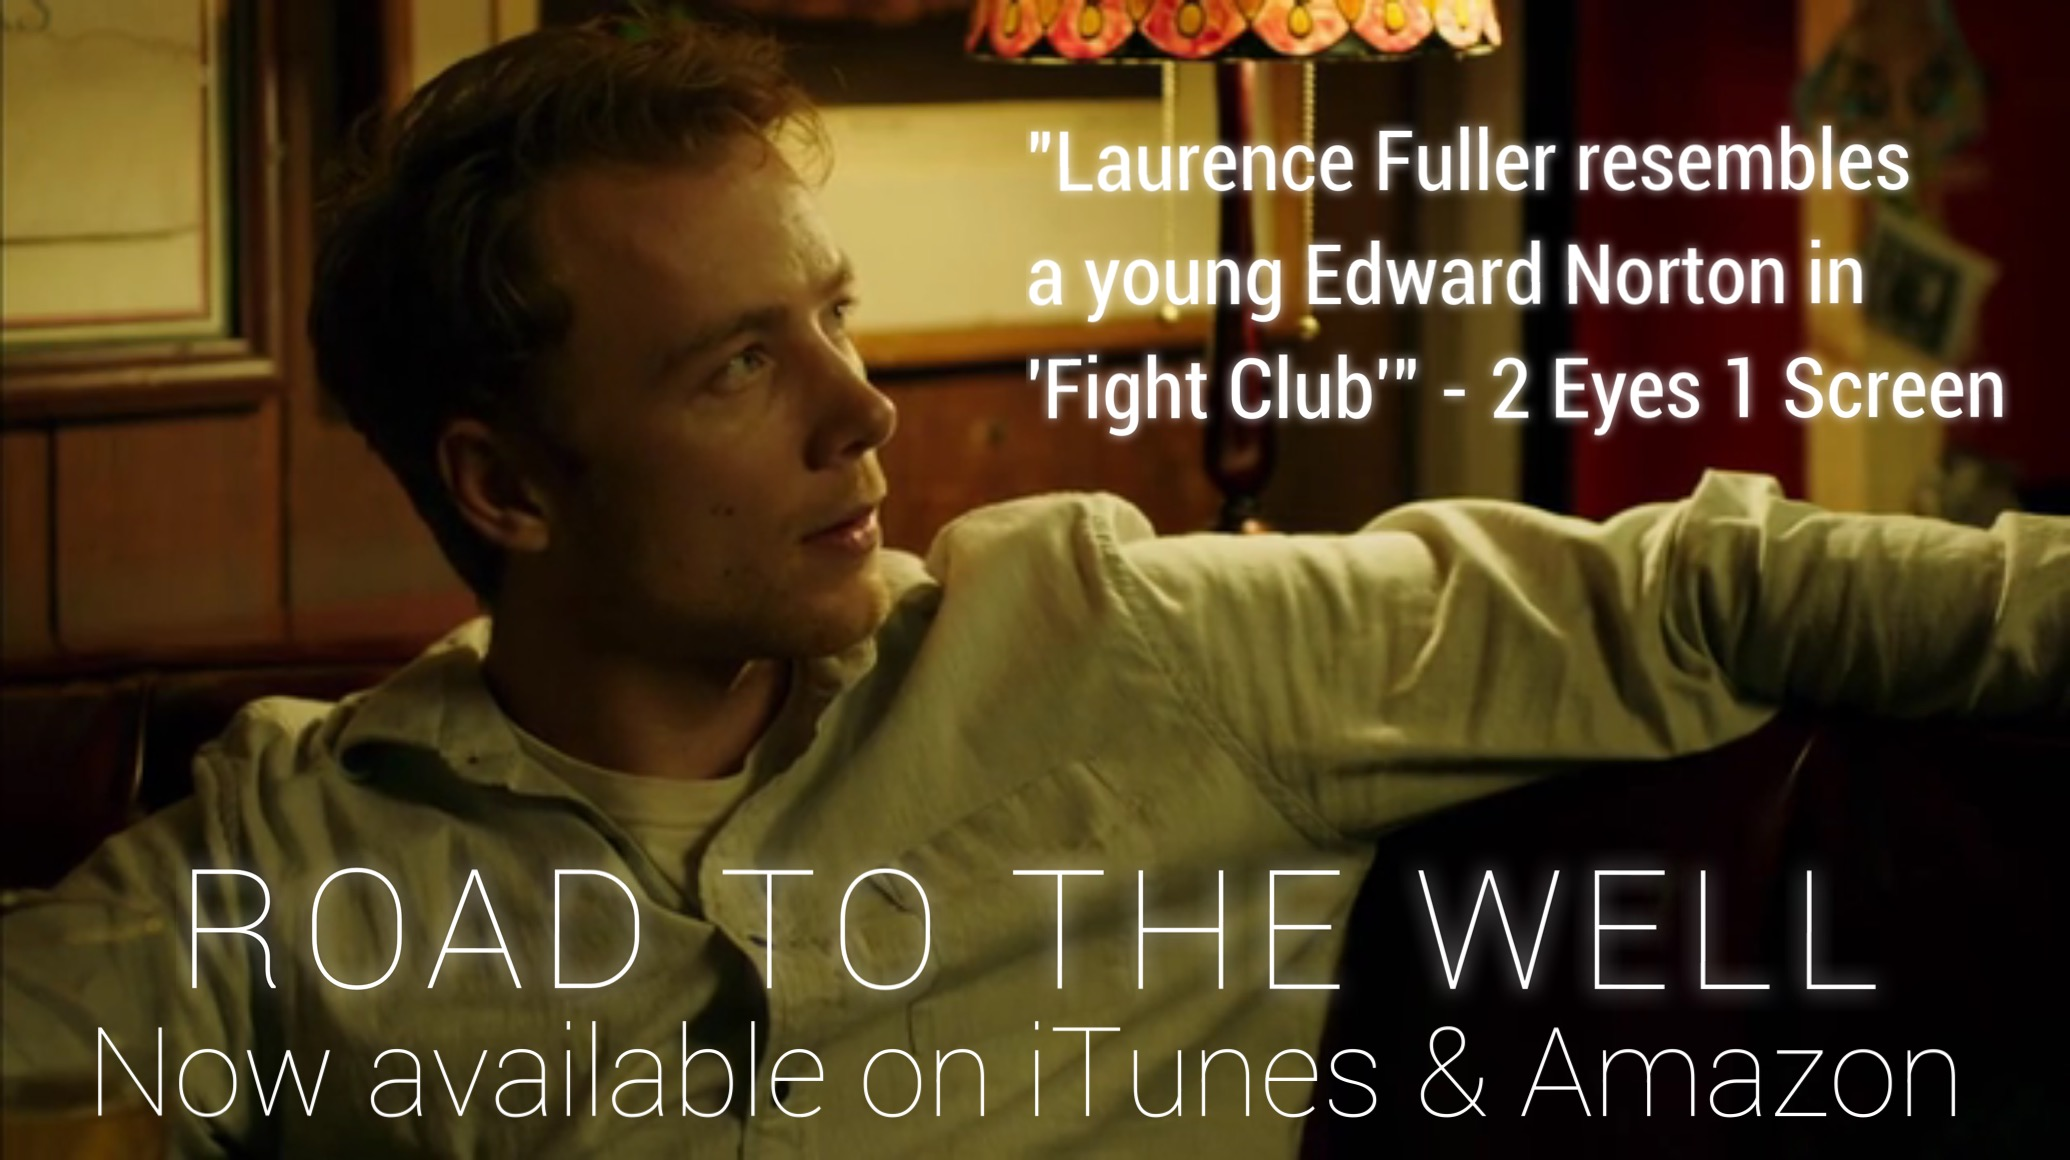 Road To The Well  is now available on  iTunes  &  Amazon